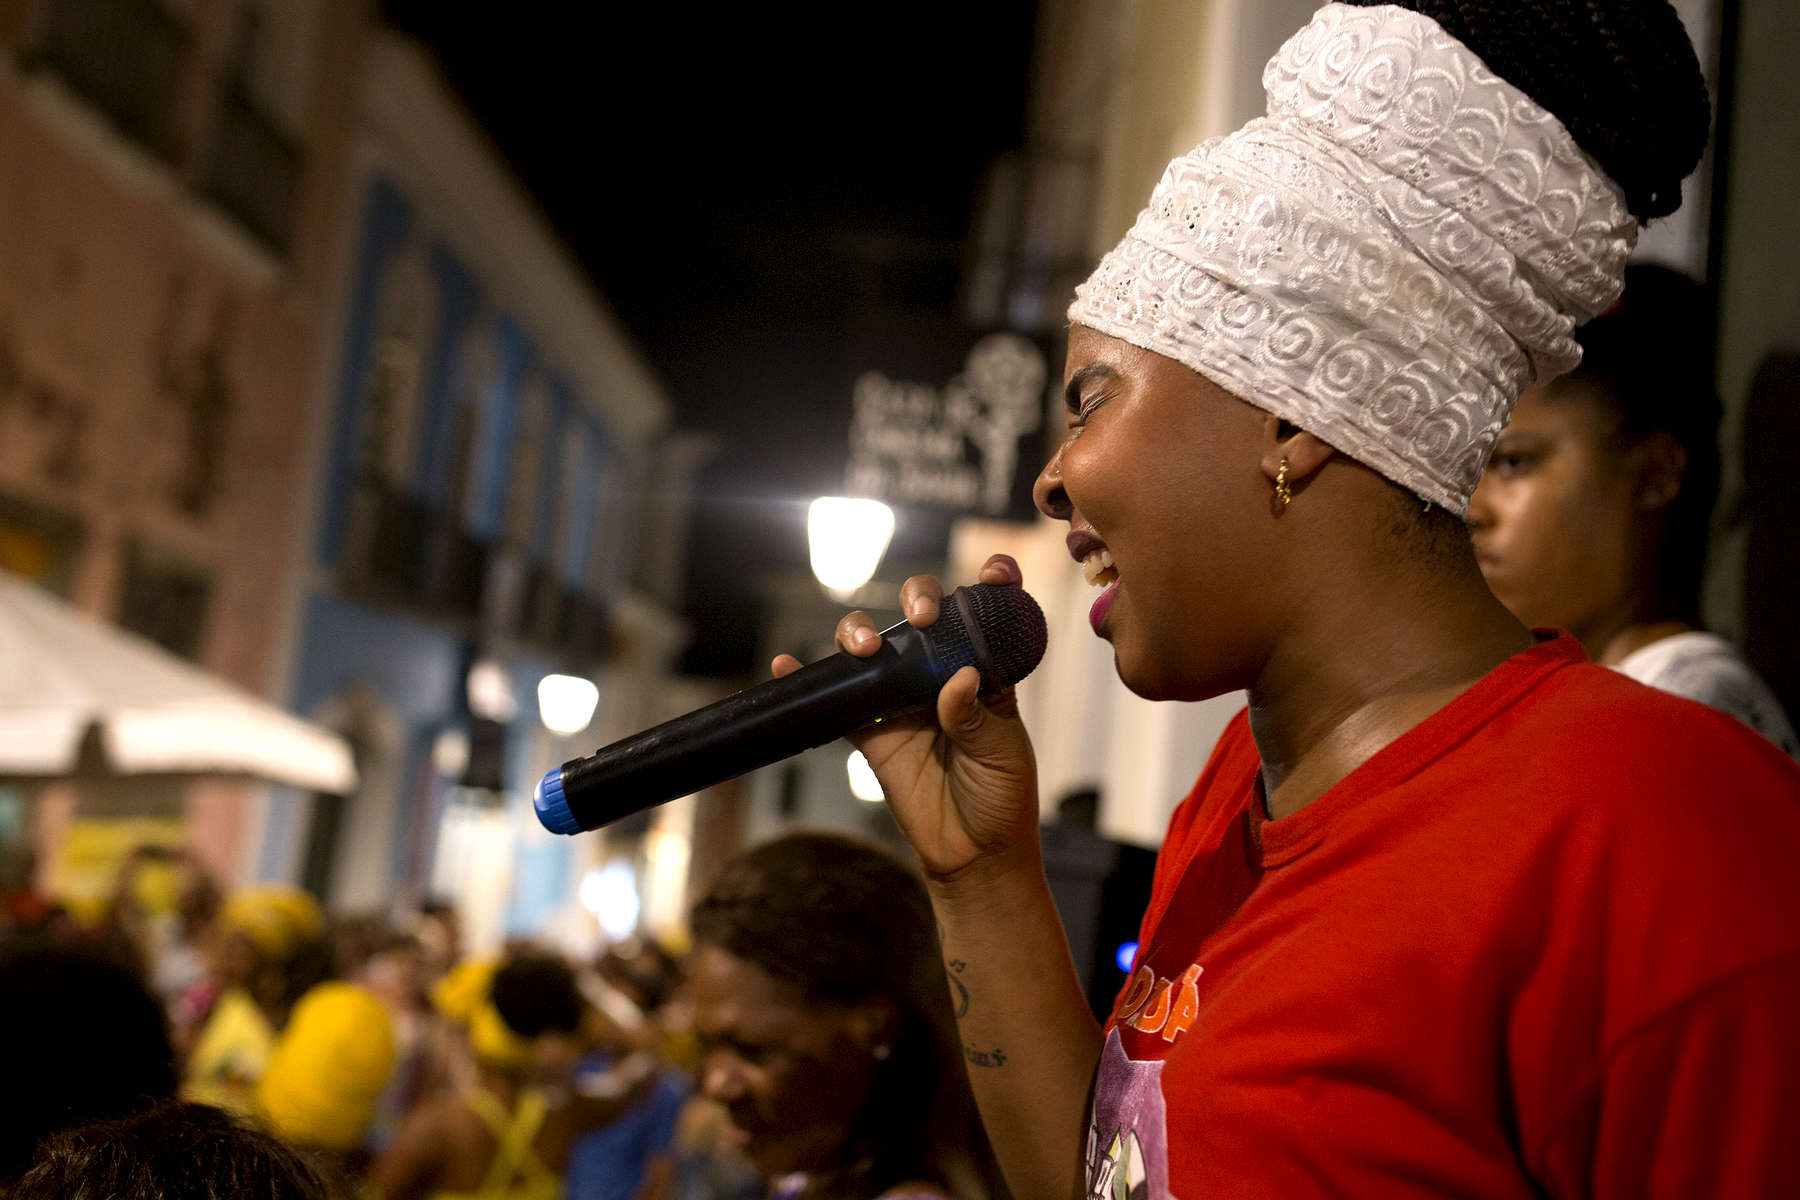 Carine Alves Teles dos Santos sings with the Didá band on the street outside Project Didá in Salvador's historic neighborhood, Pelourinho.